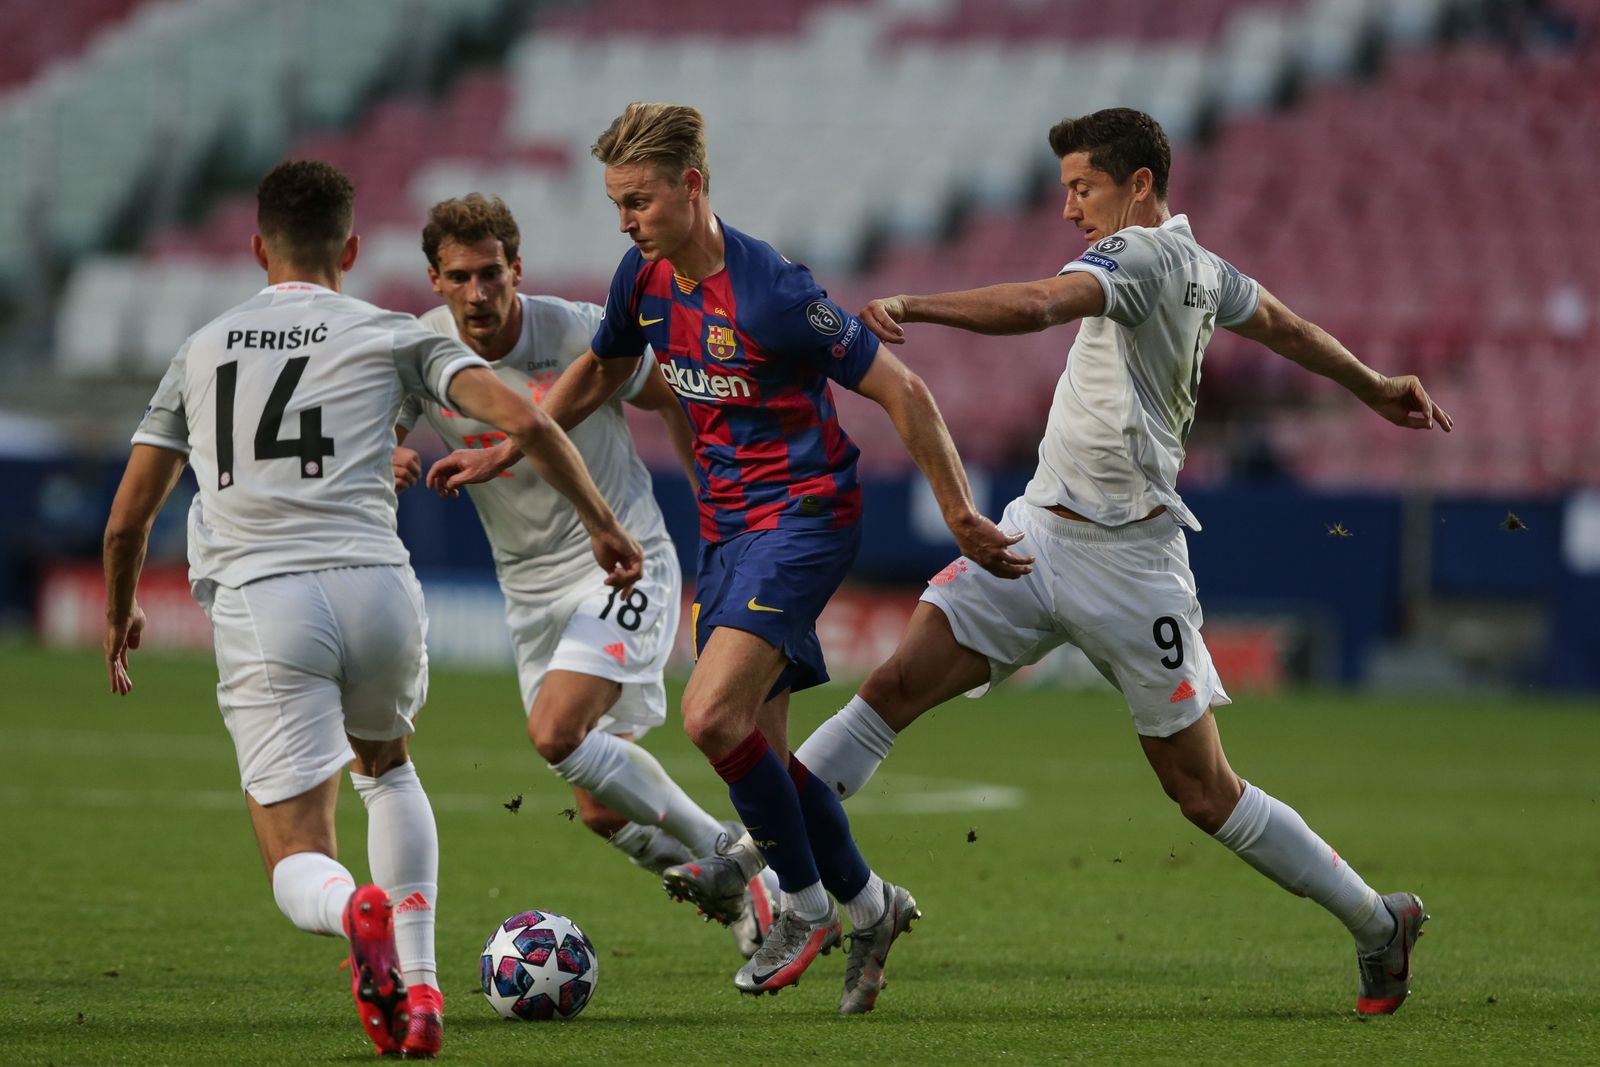 FC Barcelona vs Bayern Munich, Lisbon, Portugal - 14 Aug 2020